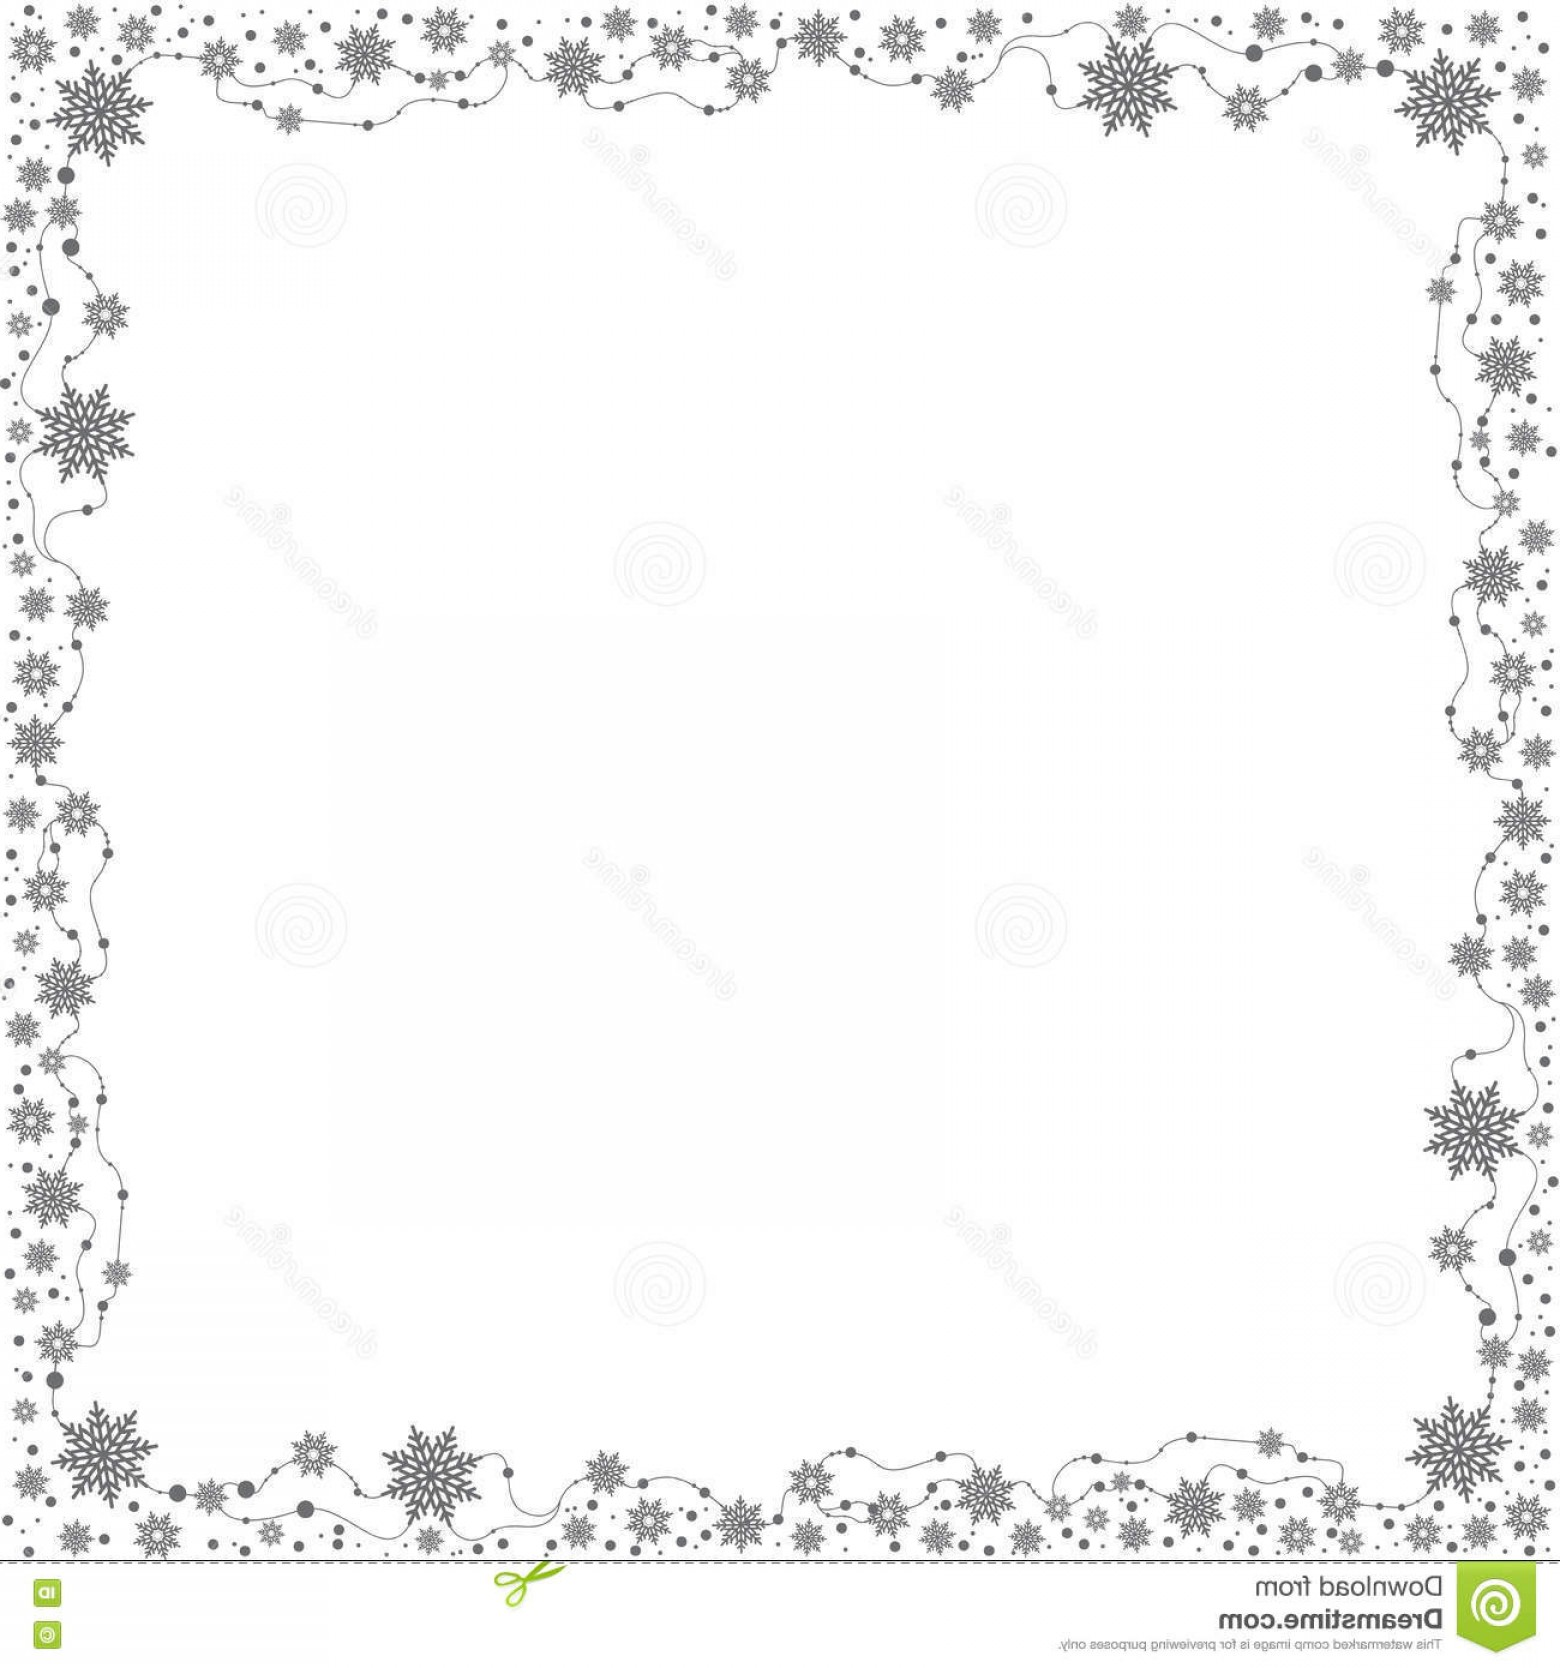 Snowflake Border Vector Art: Stock Illustration Christmas Border Gray Snowflakes White Background Vector Frame Square Size Image